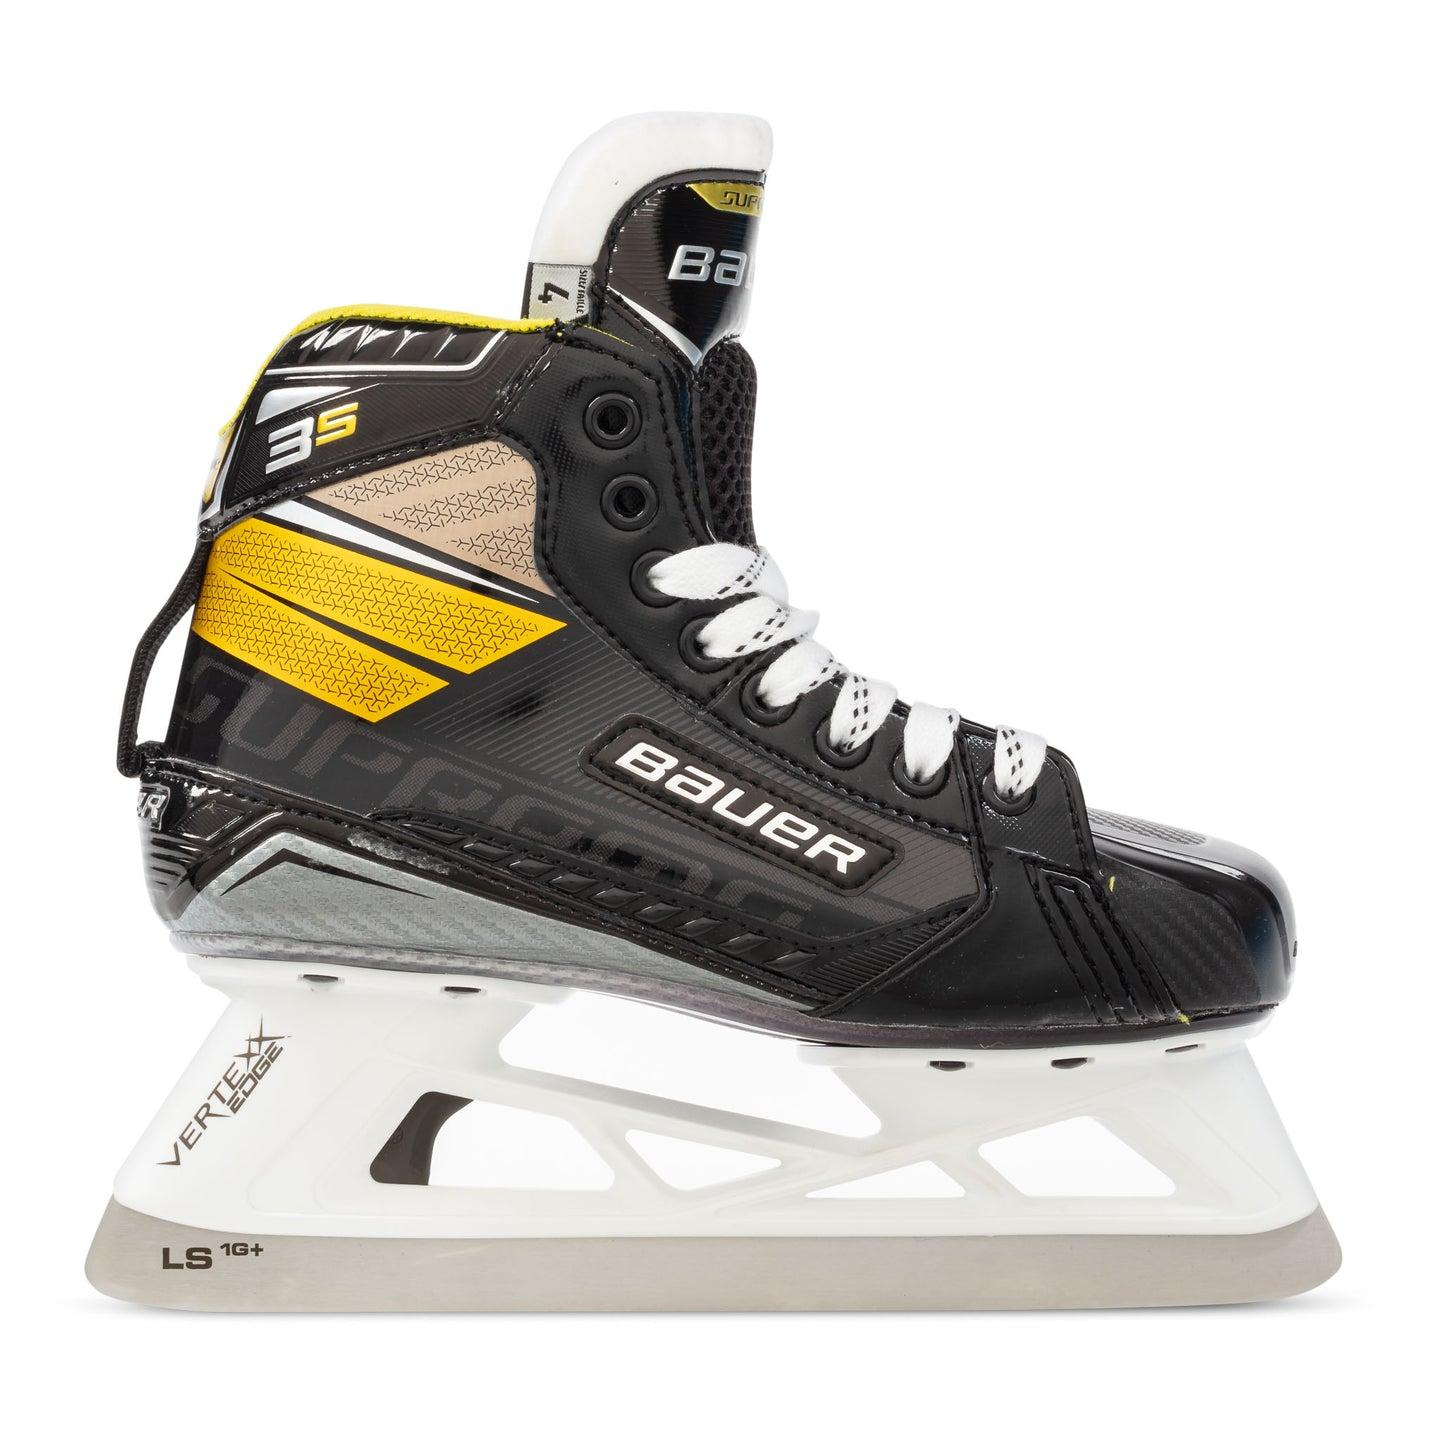 Bauer Supreme 3S Intermediate Goalie Skates